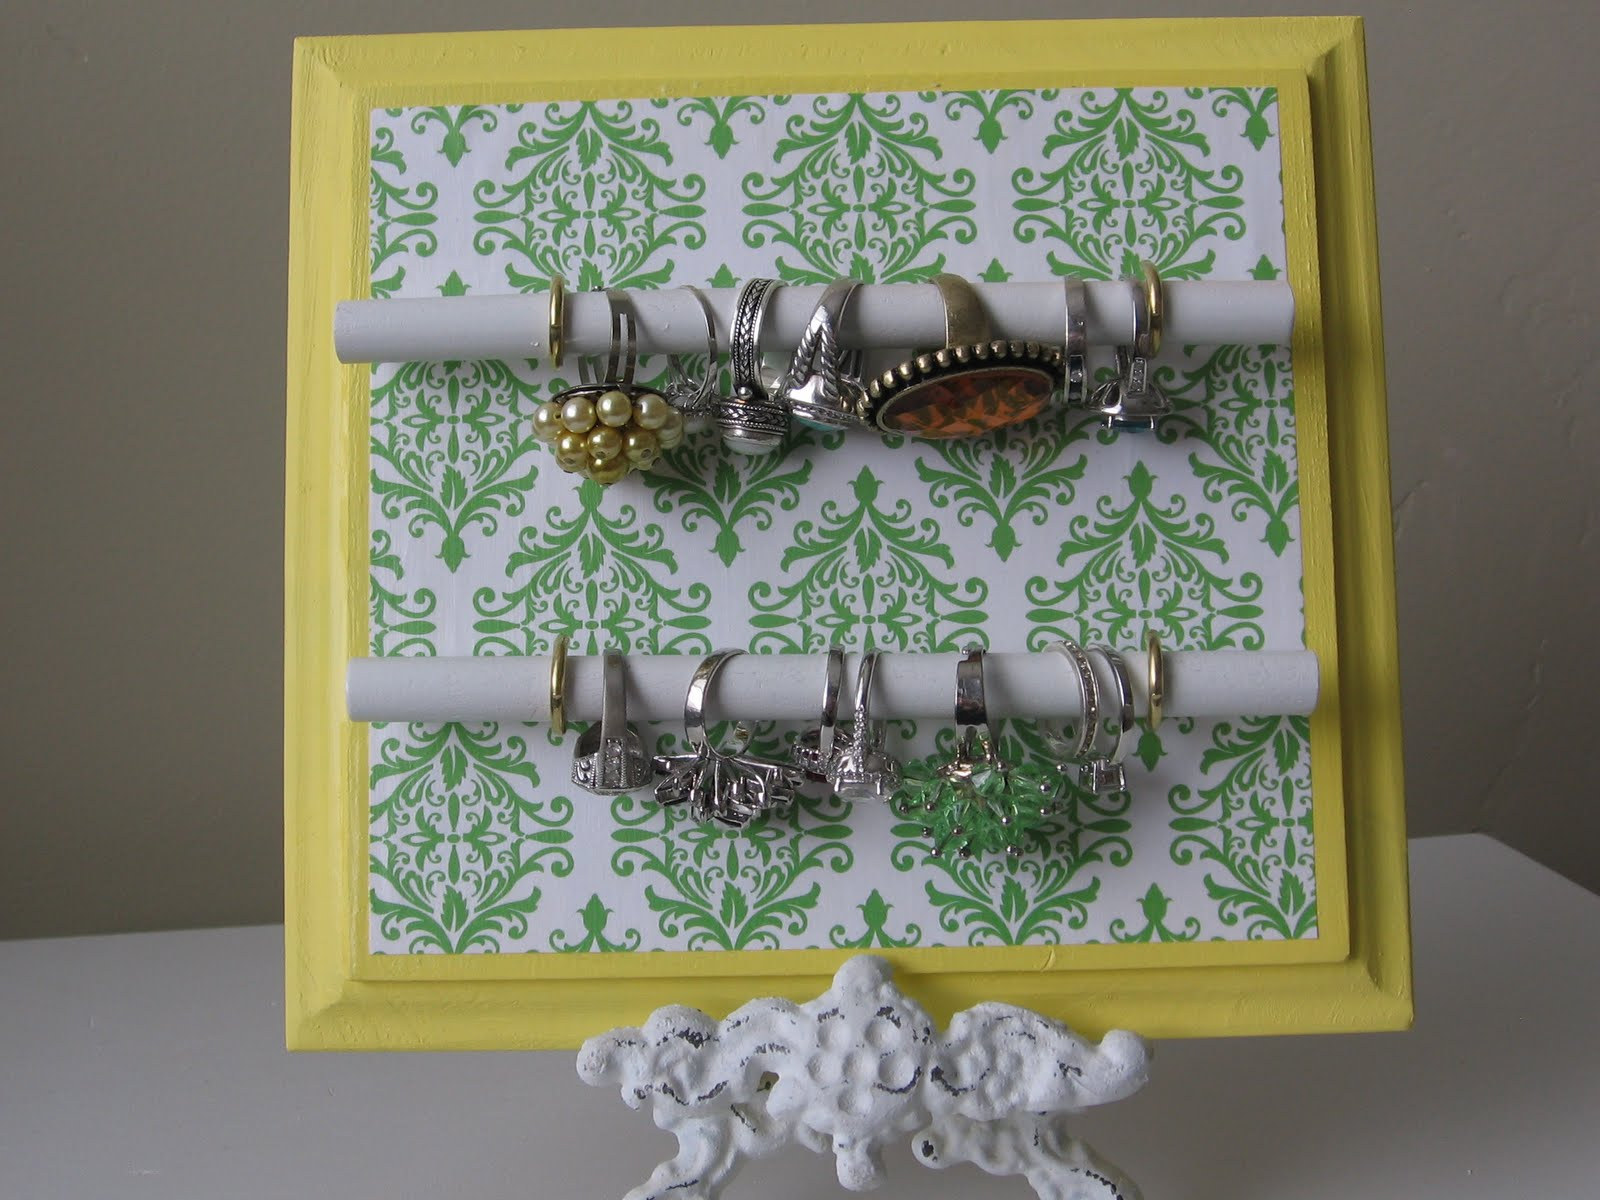 Recycle a tennis racket into a jewelry display · Recycled Crafts